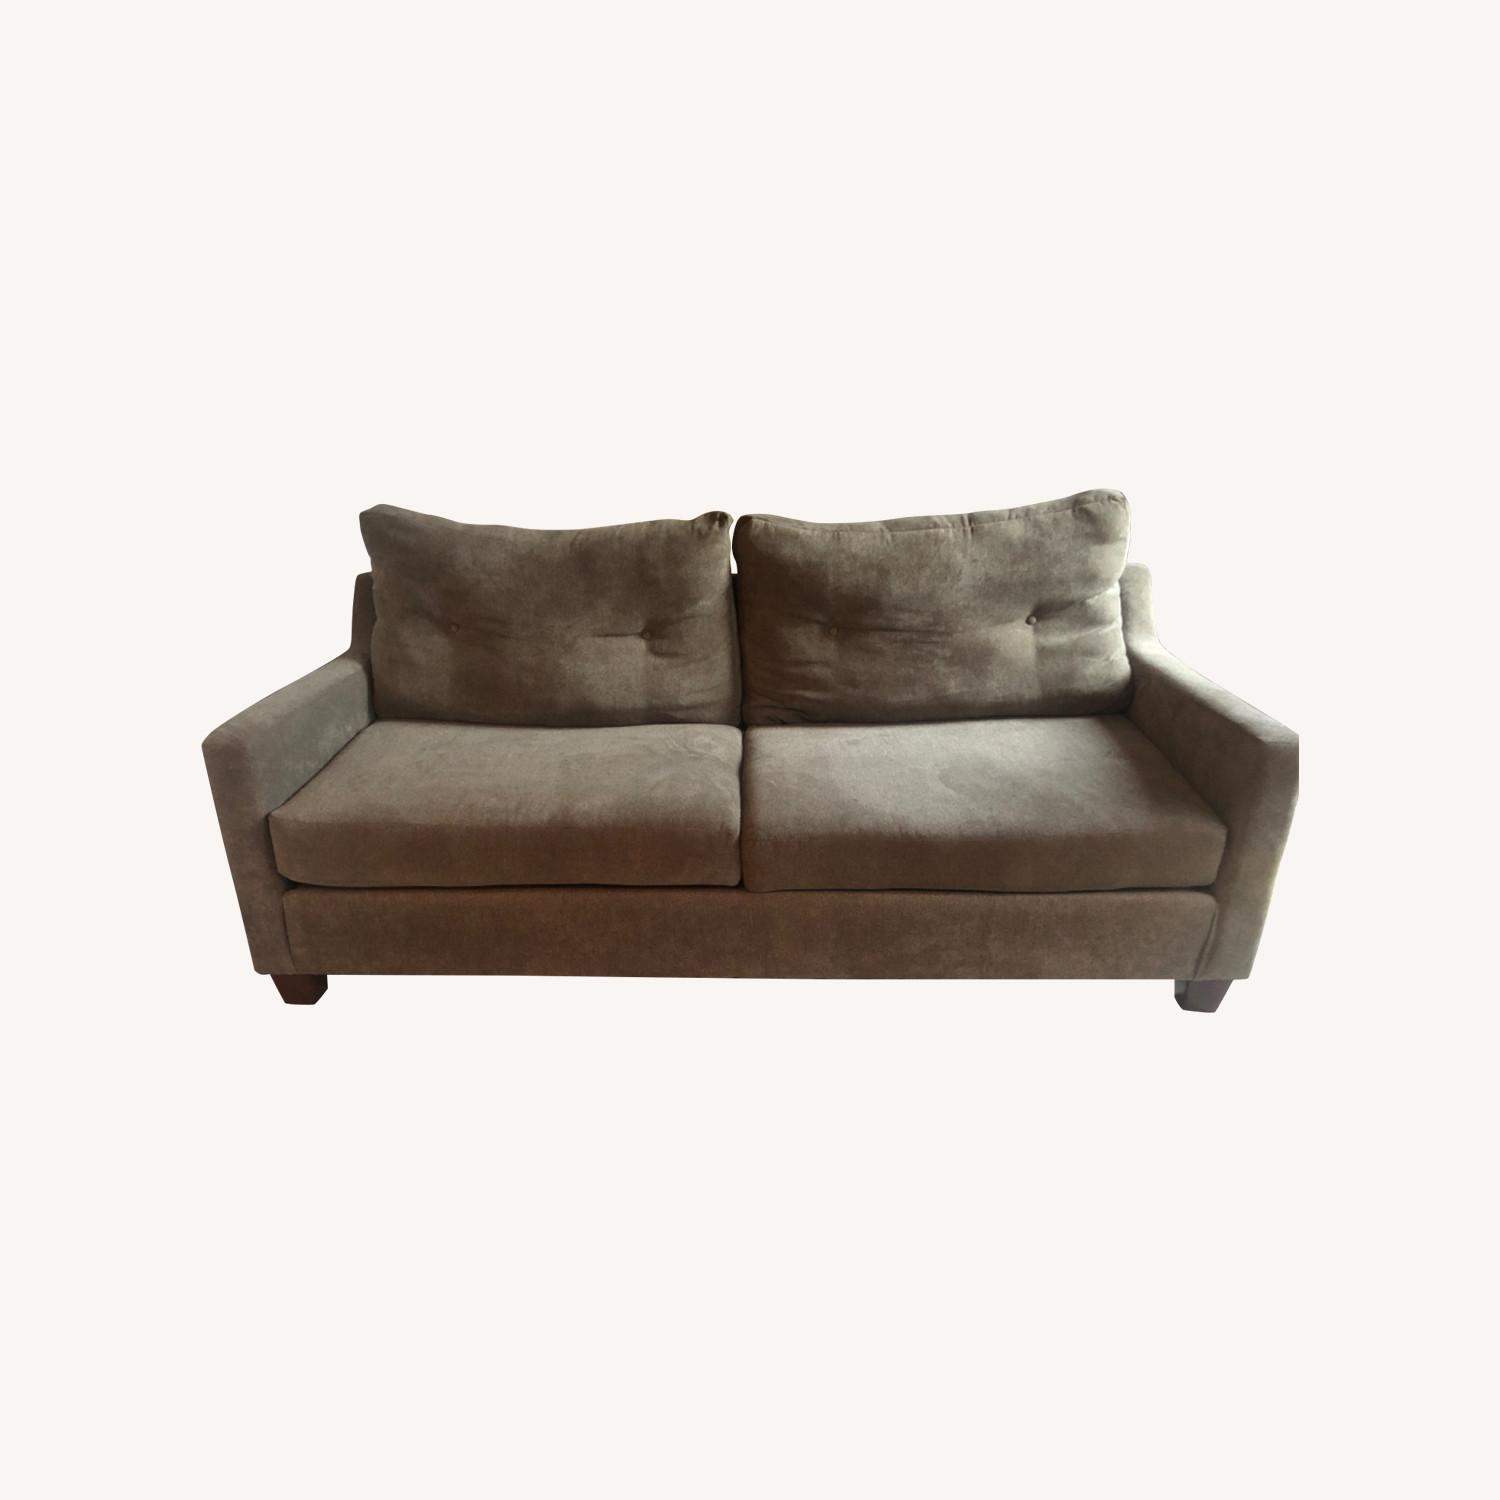 Bob's Discount Furniture Sofa - image-0